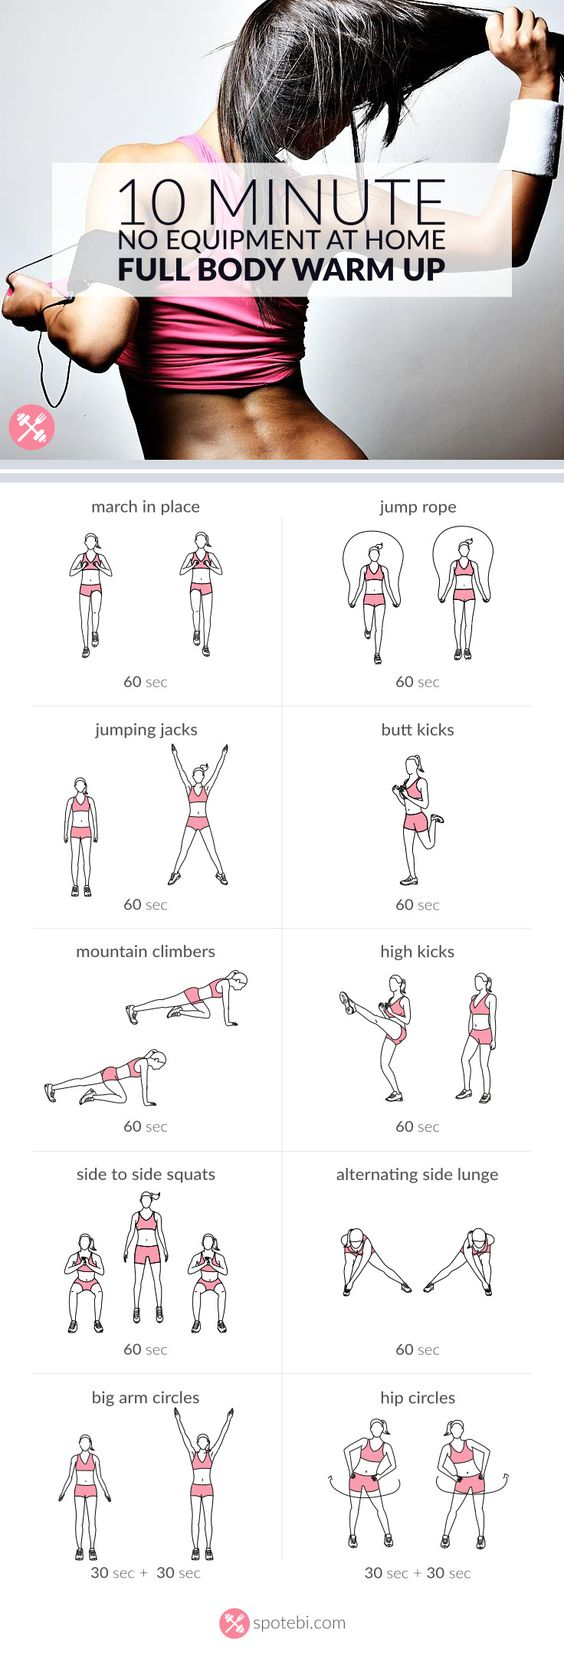 23 Beginner Fat Loss Workouts That You Can Do At Home Easily! -  TrimmedandToned